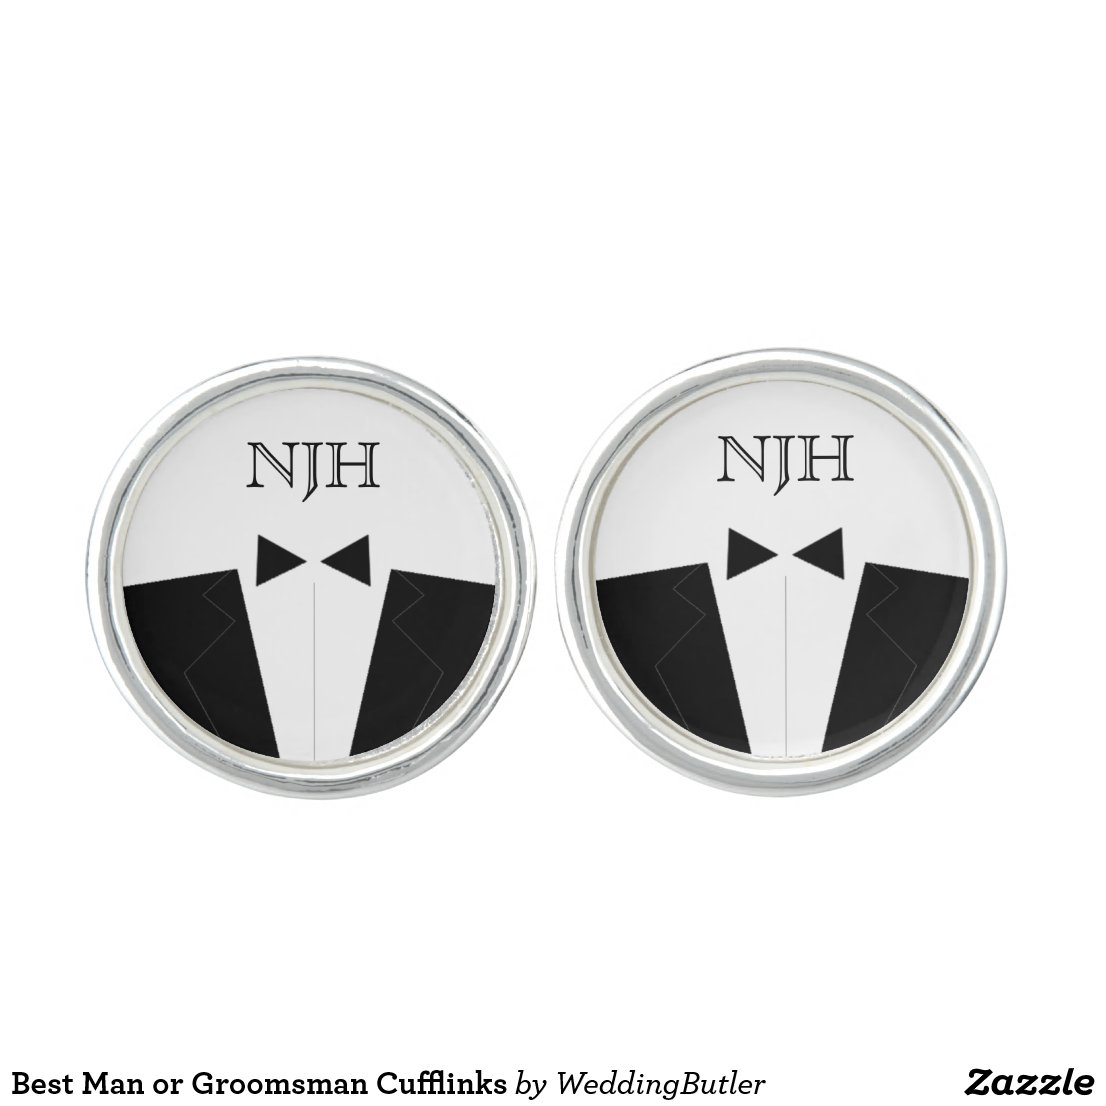 Best Man or Groomsman Cufflinks